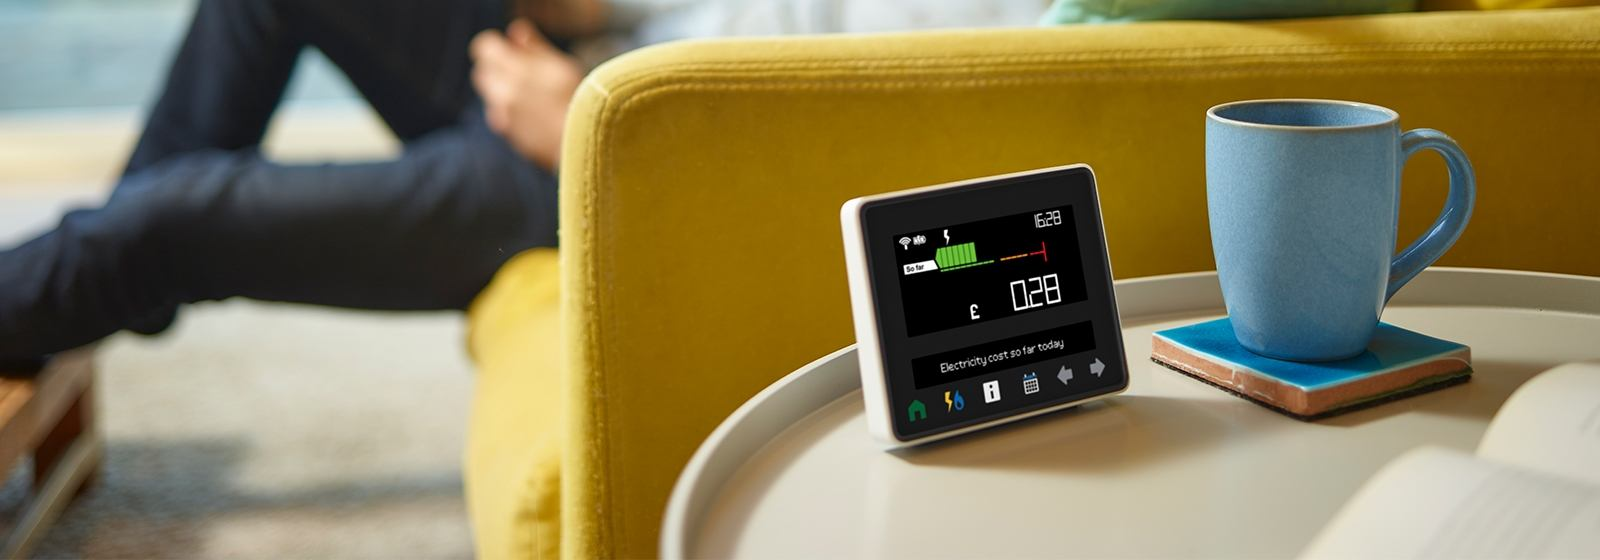 Guide for the Geo smart meter display